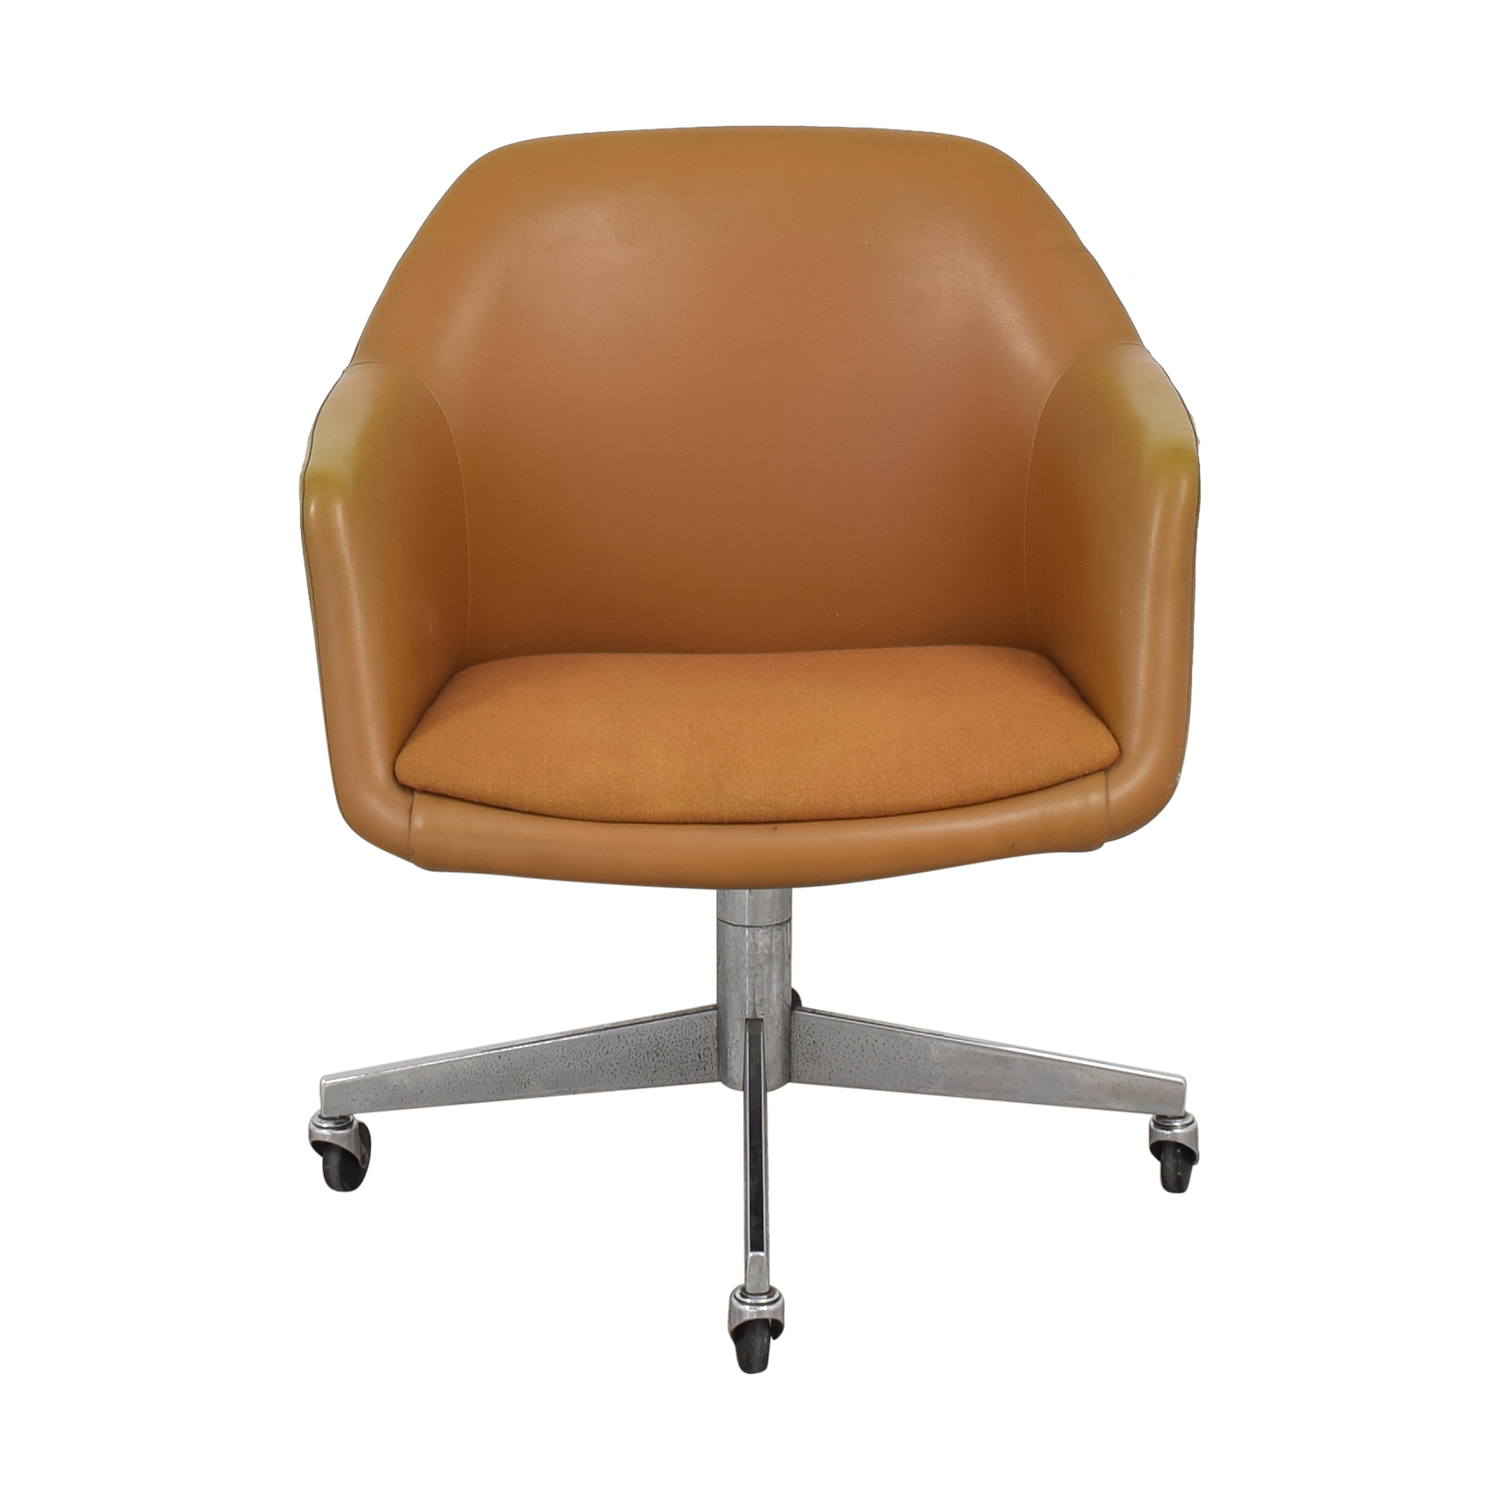 Steelcase Steelcase Mid Century Office Chair coupon